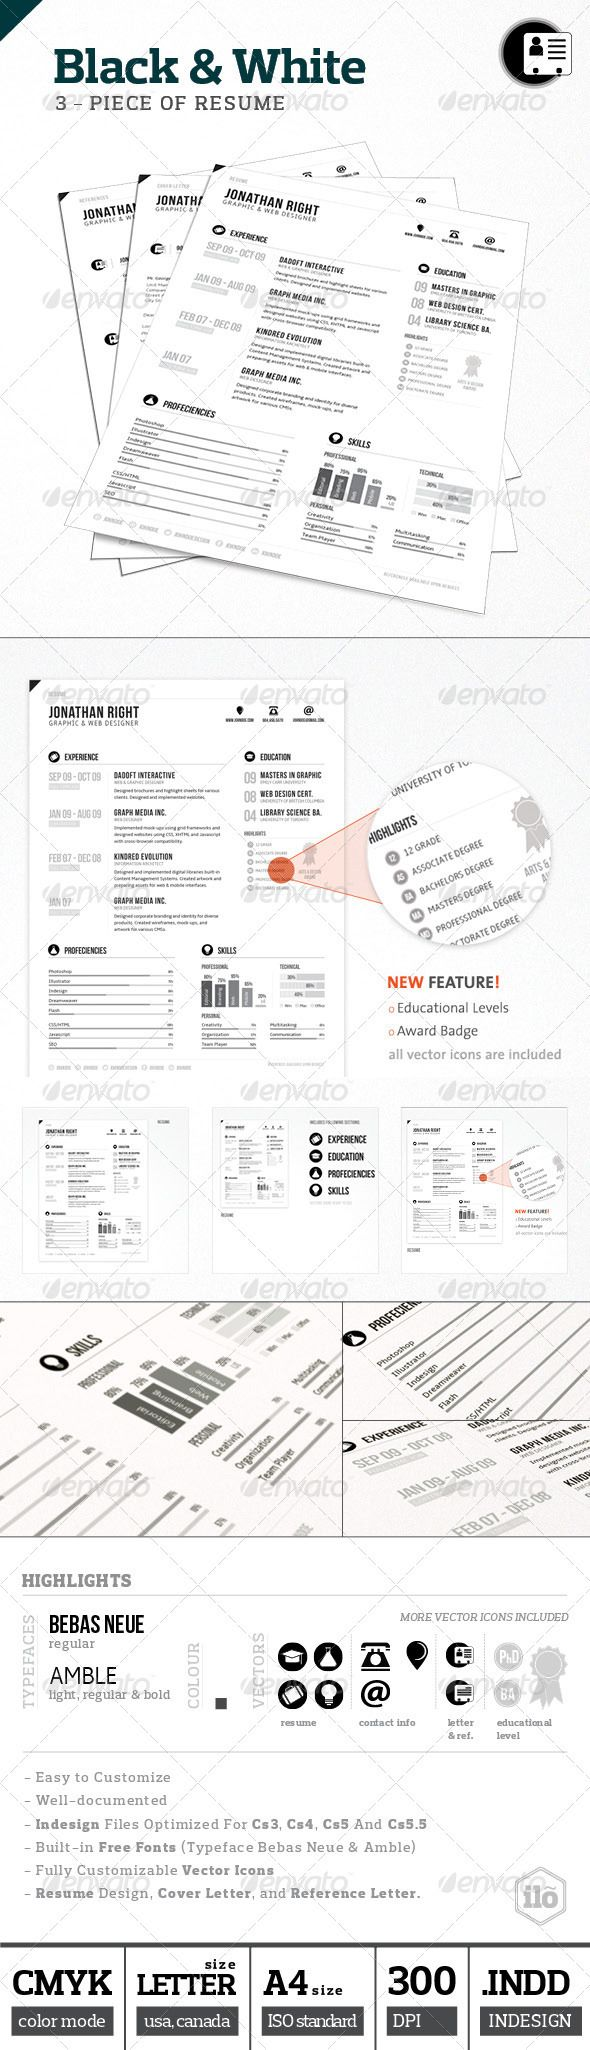 17 best images about cv infographic resume black white resume